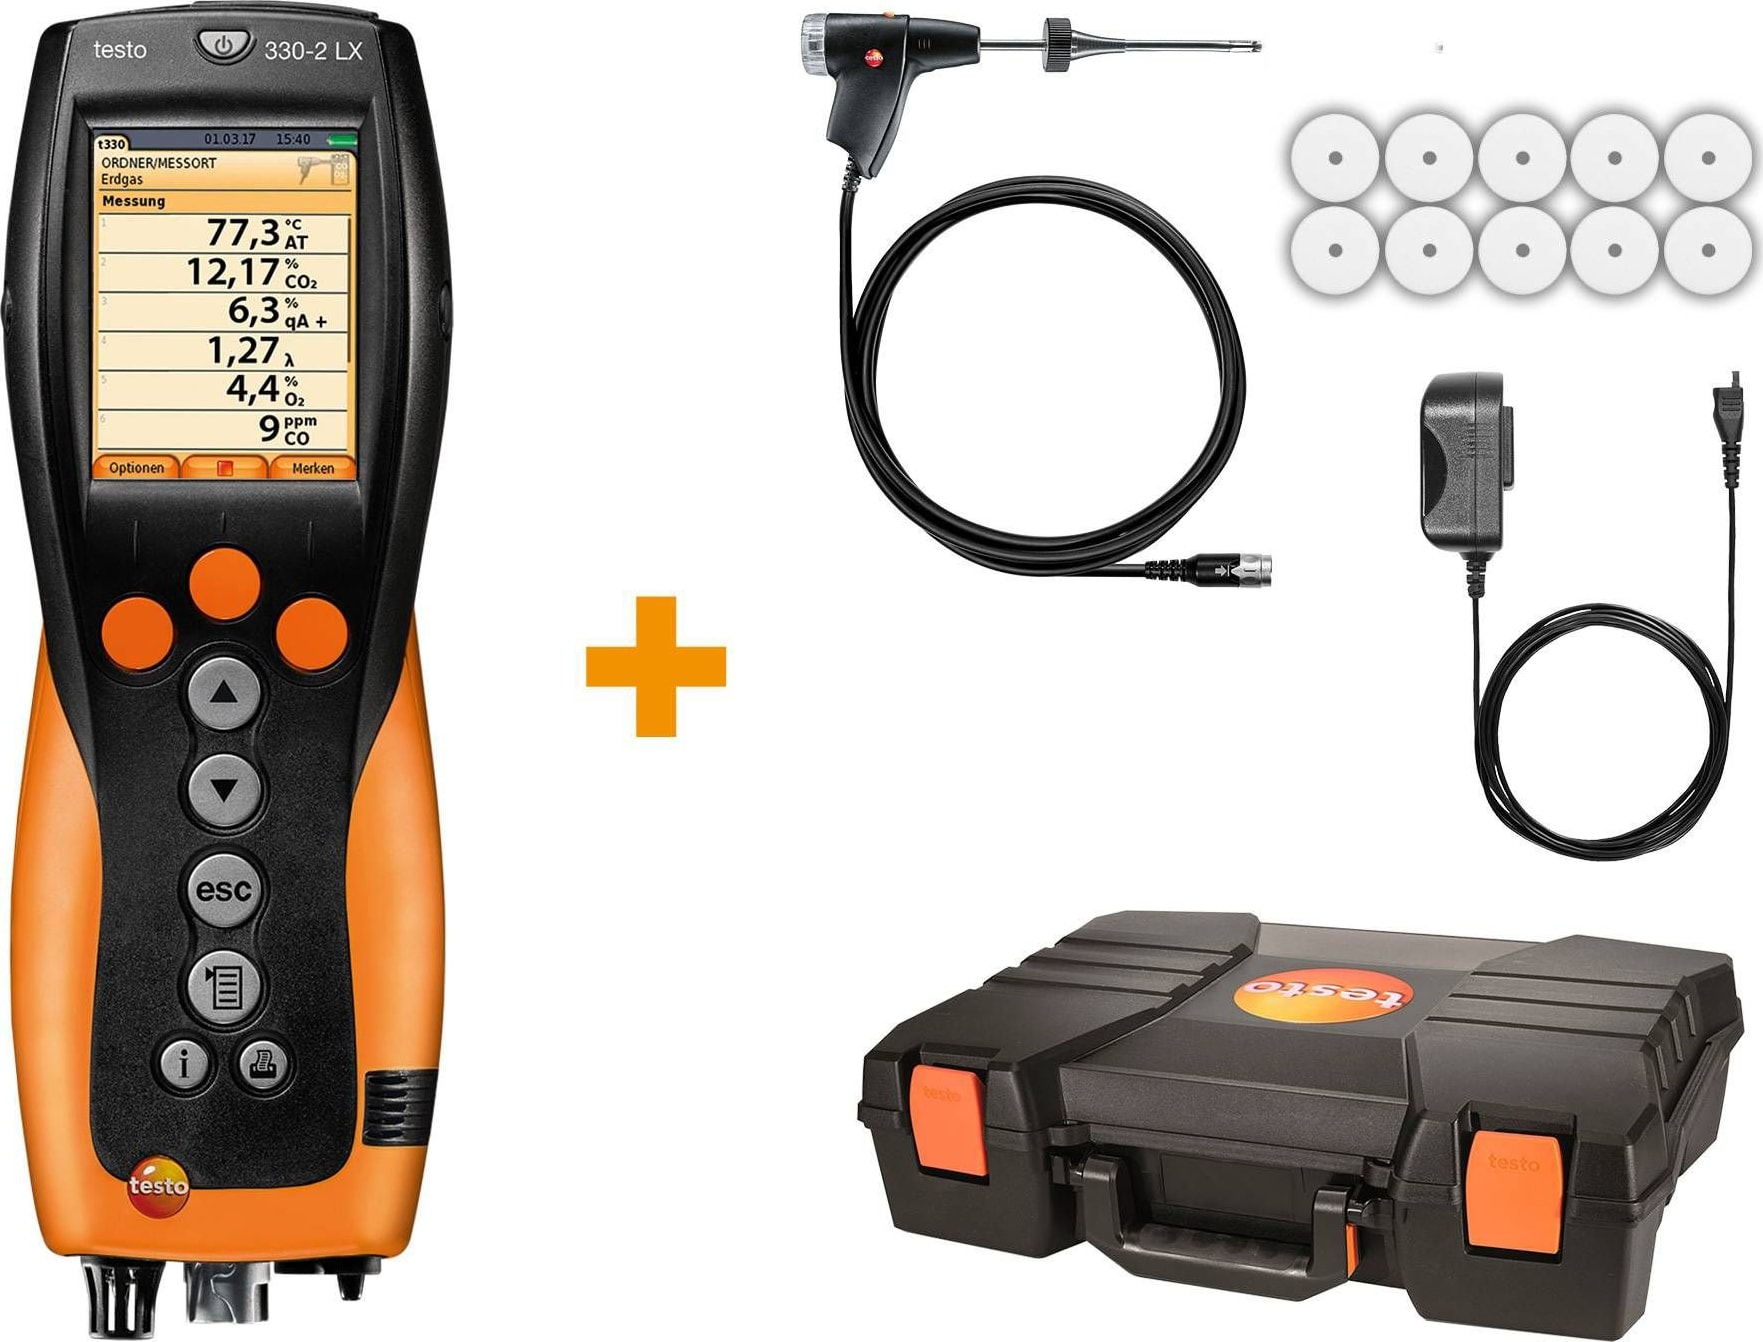 Testo 330-2 LX KIT 2 - Industrial Combustion Analyzer with NOx Measurement